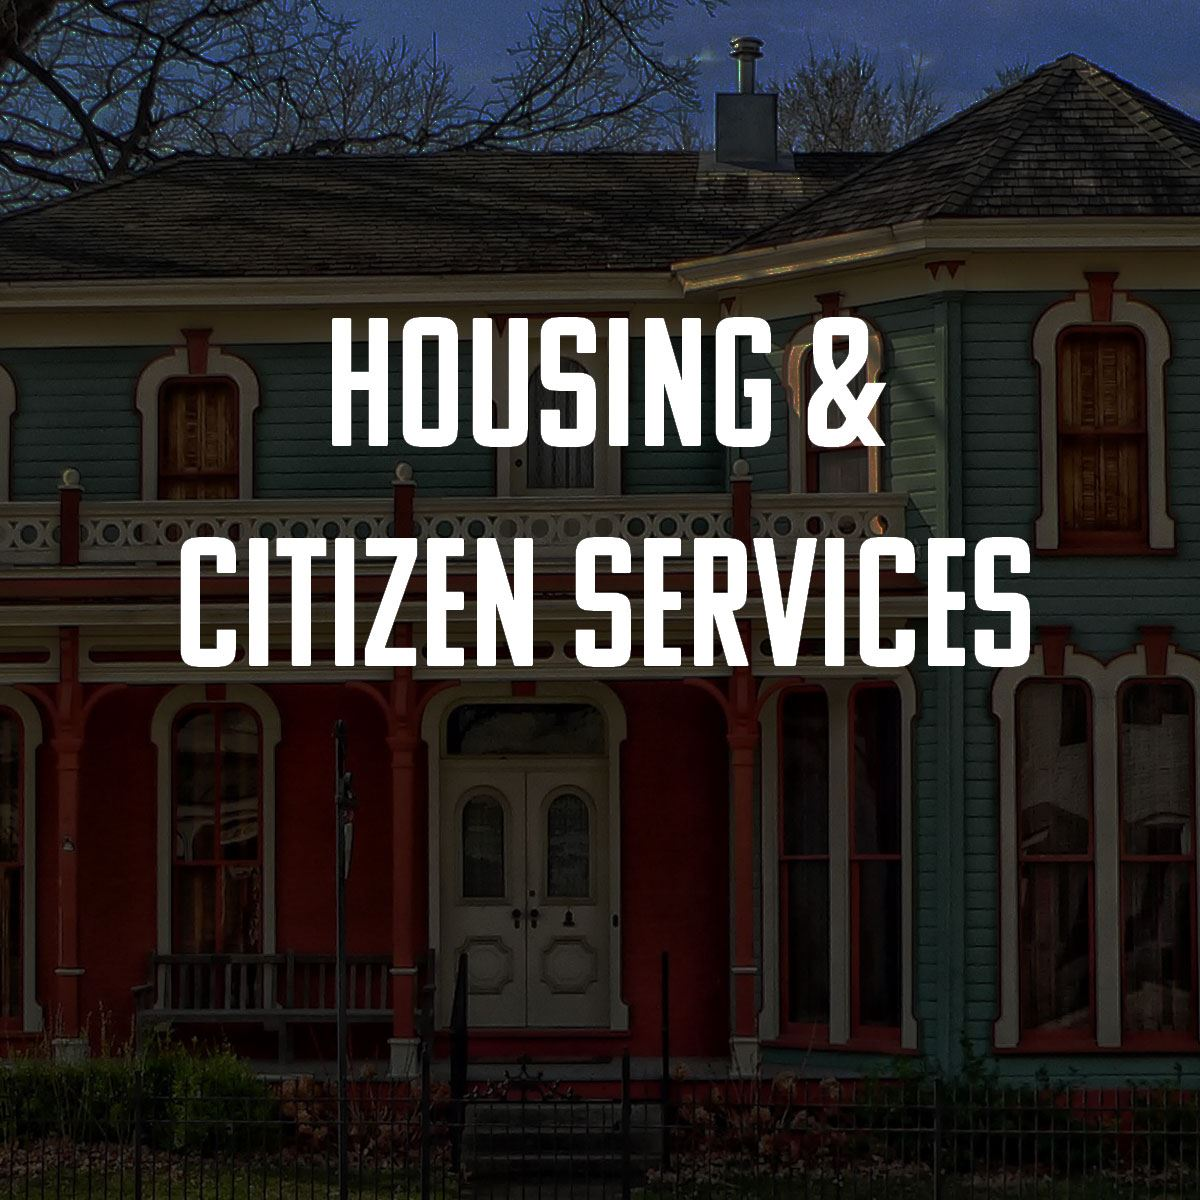 Housing and citizen services